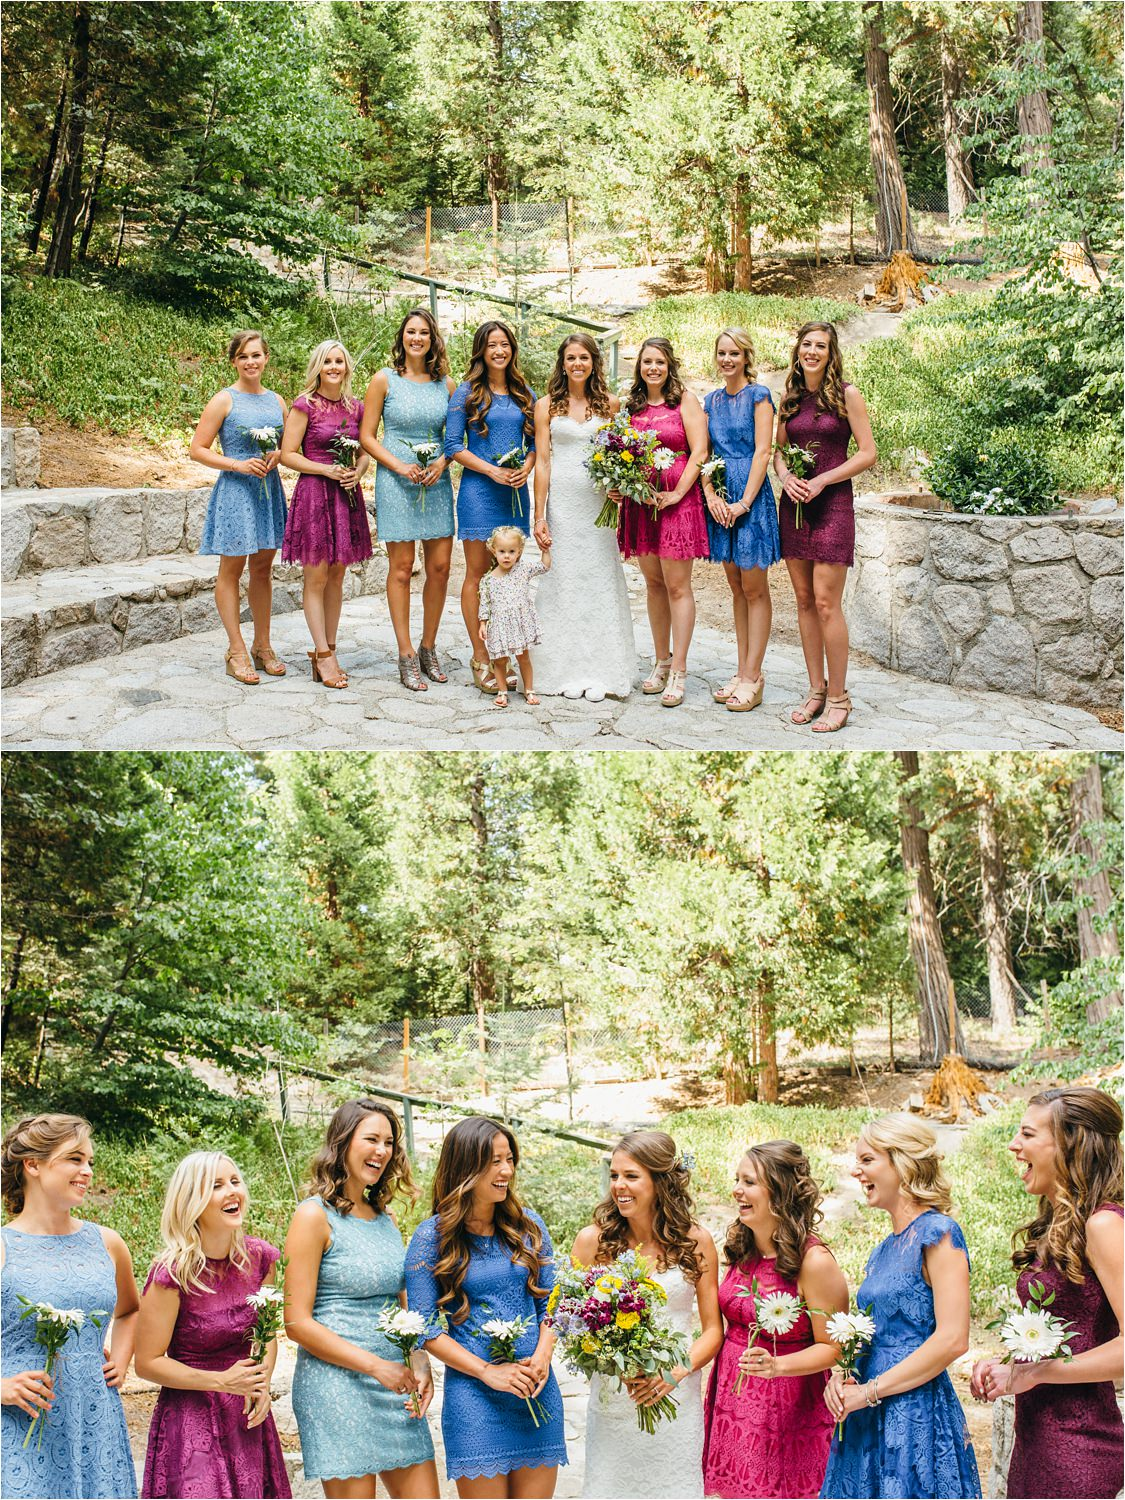 Bride & Bridesmaids - Southern California Wedding Photographer - https://brittneyhannonphotography.com